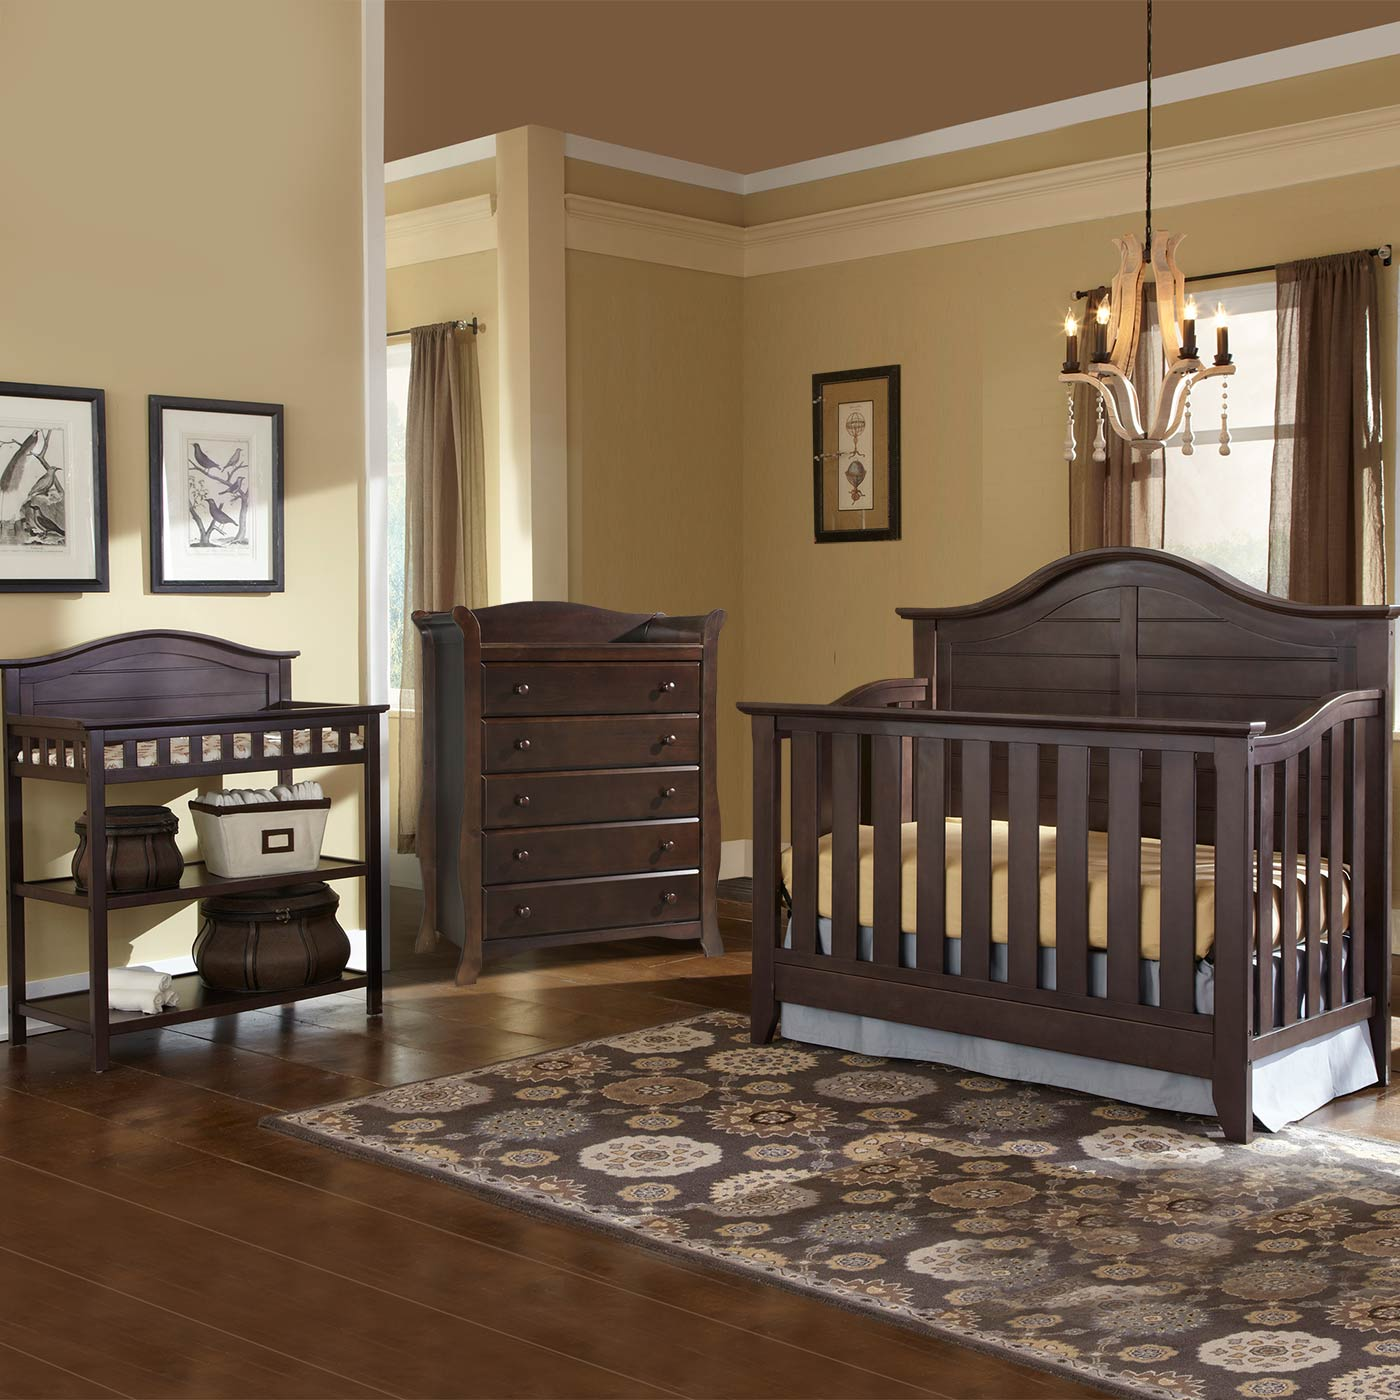 Gentil Thomasville 3 Piece Nursery Set   Southern Dunes Lifestyle Crib, Dressing  Table And Avalon 5 Drawer Dresser In Espresso FREE SHIPPING